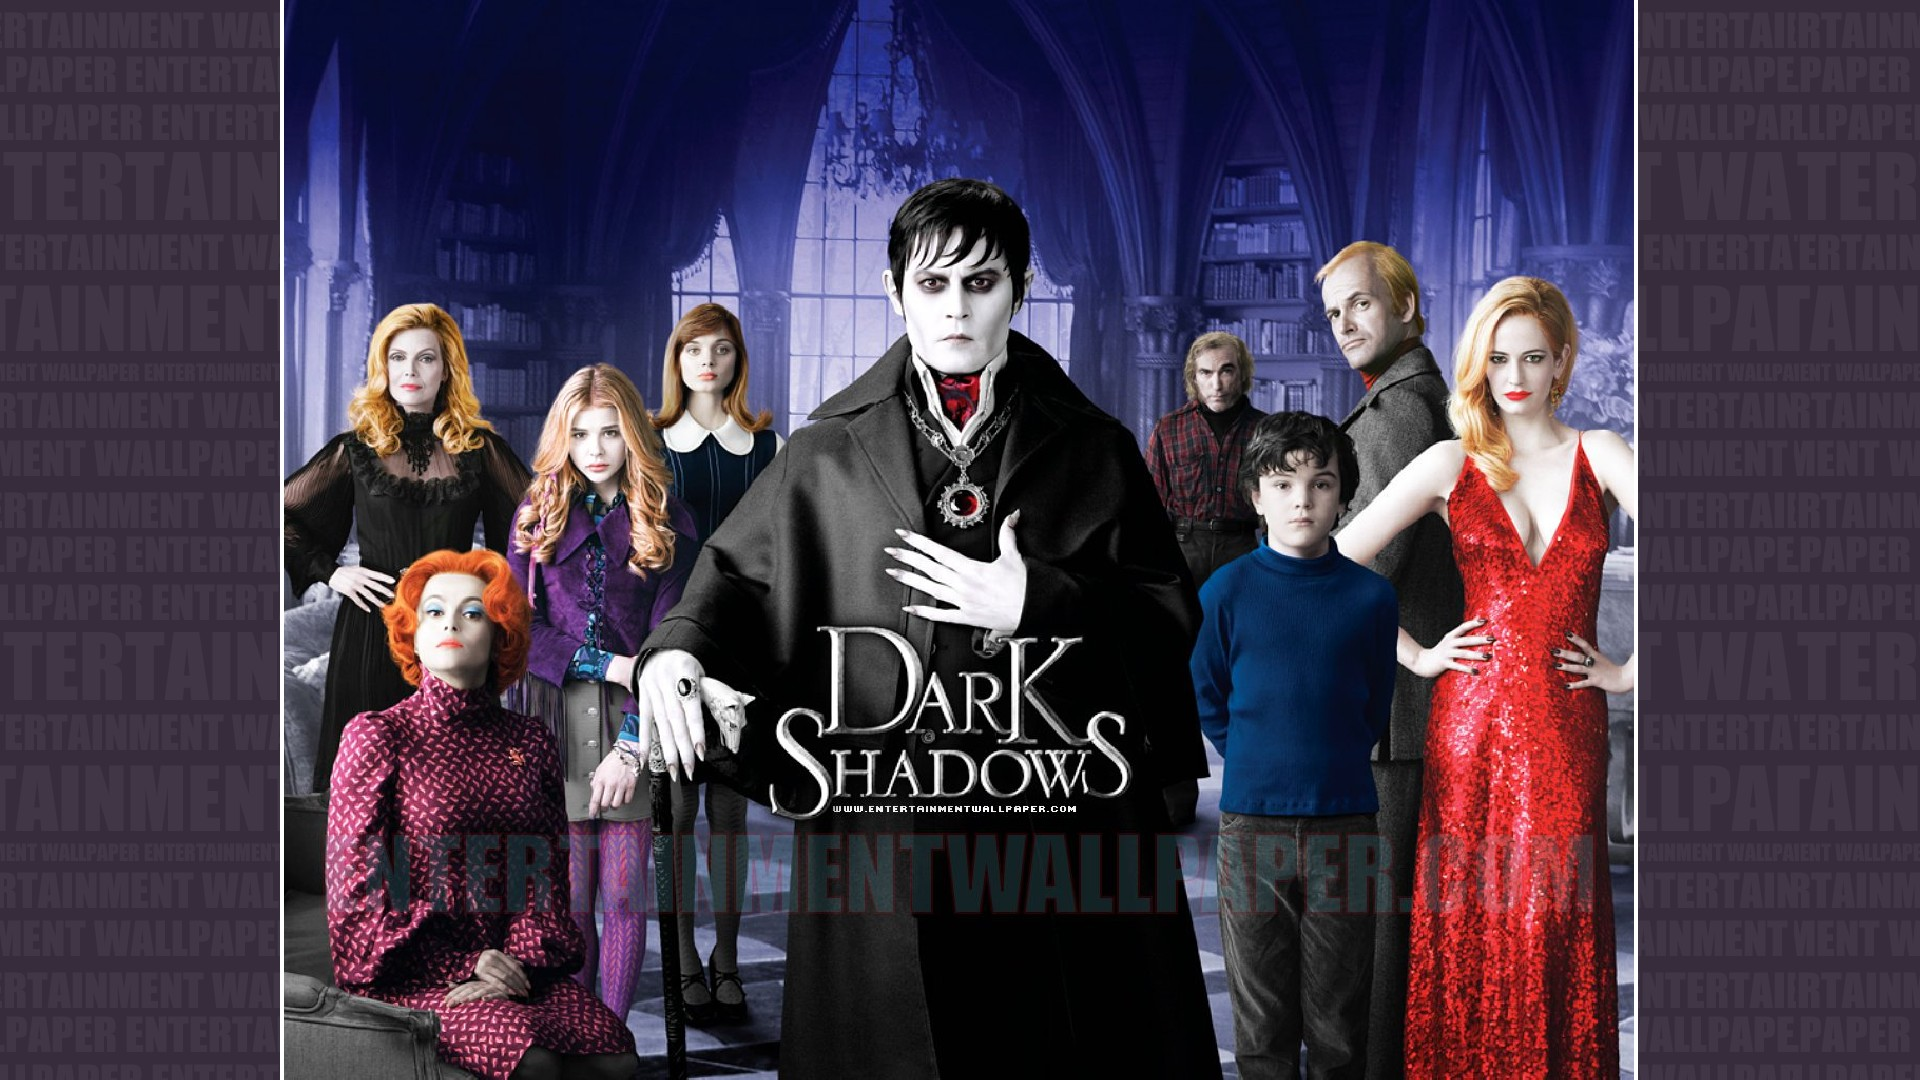 tv show dark shadows wallpaper 10031523 size 1920x1080 more dark 1920x1080